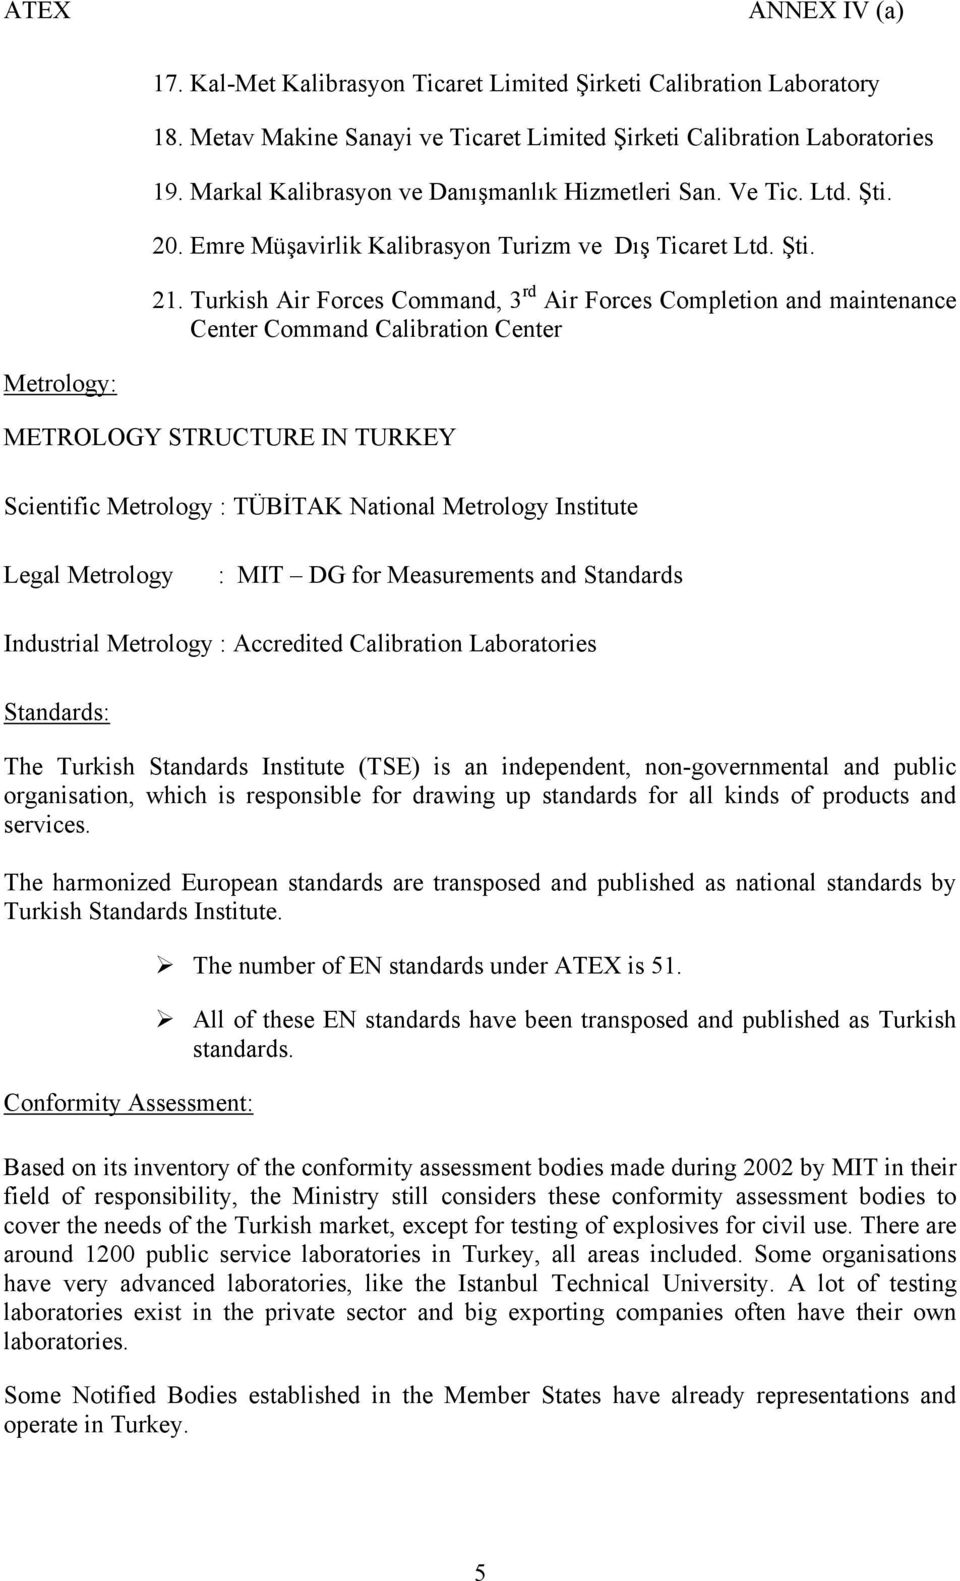 Turkish Air Forces Command, 3 rd Air Forces Completion and maintenance Center Command Calibration Center Metrology: METROLOGY STRUCTURE IN TURKEY Scientific Metrology : TÜBİTAK National Metrology